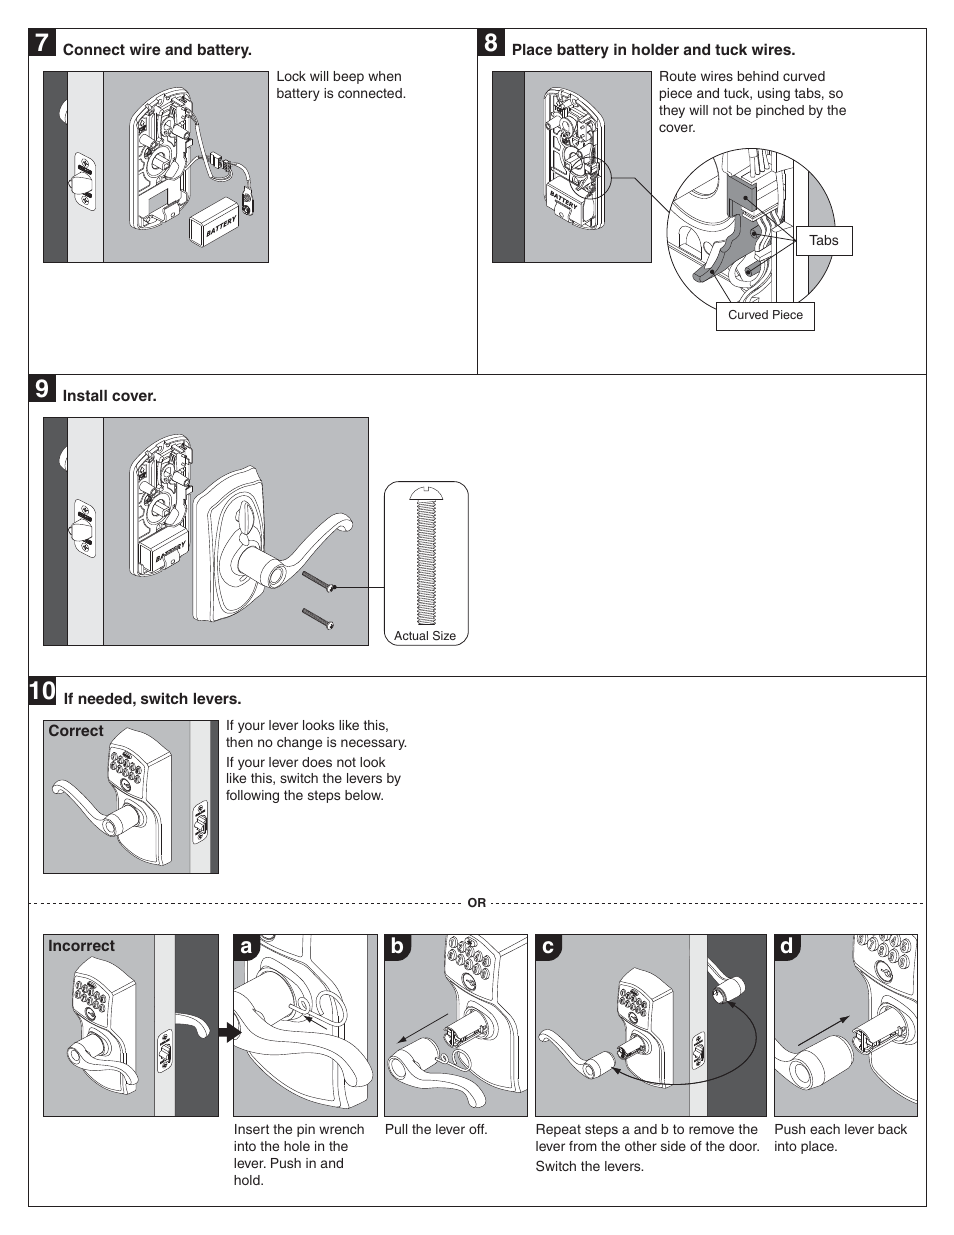 Ab C D Schlage Fe595 Installation User Manual Page 3 8